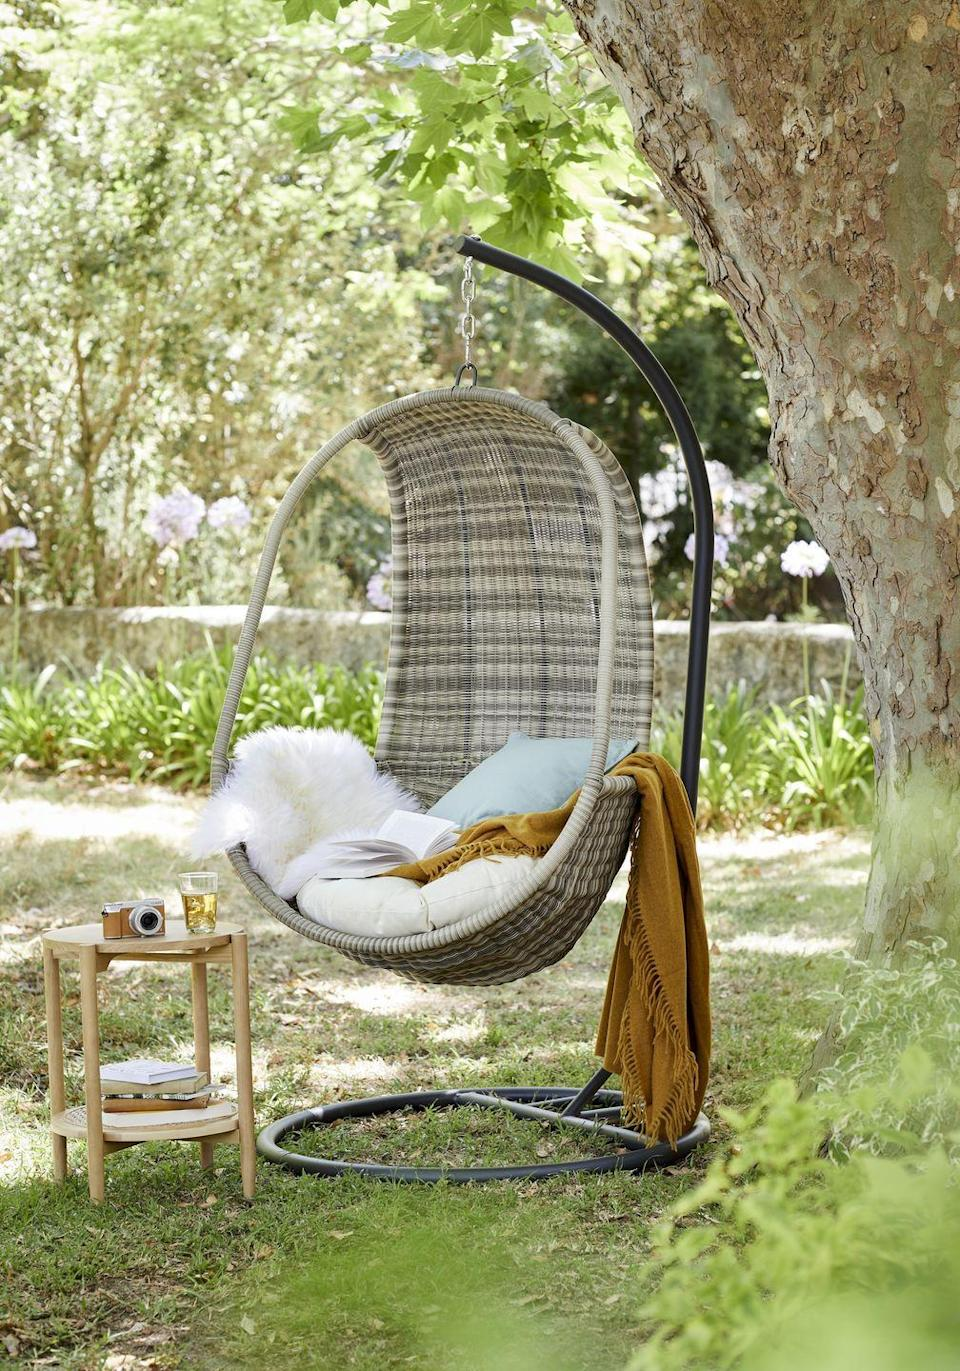 """<p>Egg chairs are all the rage this summer. As well as looking incredibly stylish in the garden, they're the perfect spot for gently swinging in the sunshine. Add a soft blanket for extra comfort. </p><p><a class=""""link rapid-noclick-resp"""" href=""""https://go.redirectingat.com?id=127X1599956&url=https%3A%2F%2Fwww.johnlewis.com%2Fjohn-lewis-partners-garden-dante-hanging-pod-chair%2Fp2067115&sref=https%3A%2F%2Fwww.housebeautiful.com%2Fuk%2Flifestyle%2Fg35954786%2Fjohn-lewis-garden-collection-spring-summer%2F"""" rel=""""nofollow noopener"""" target=""""_blank"""" data-ylk=""""slk:SHOP NOW"""">SHOP NOW</a></p>"""